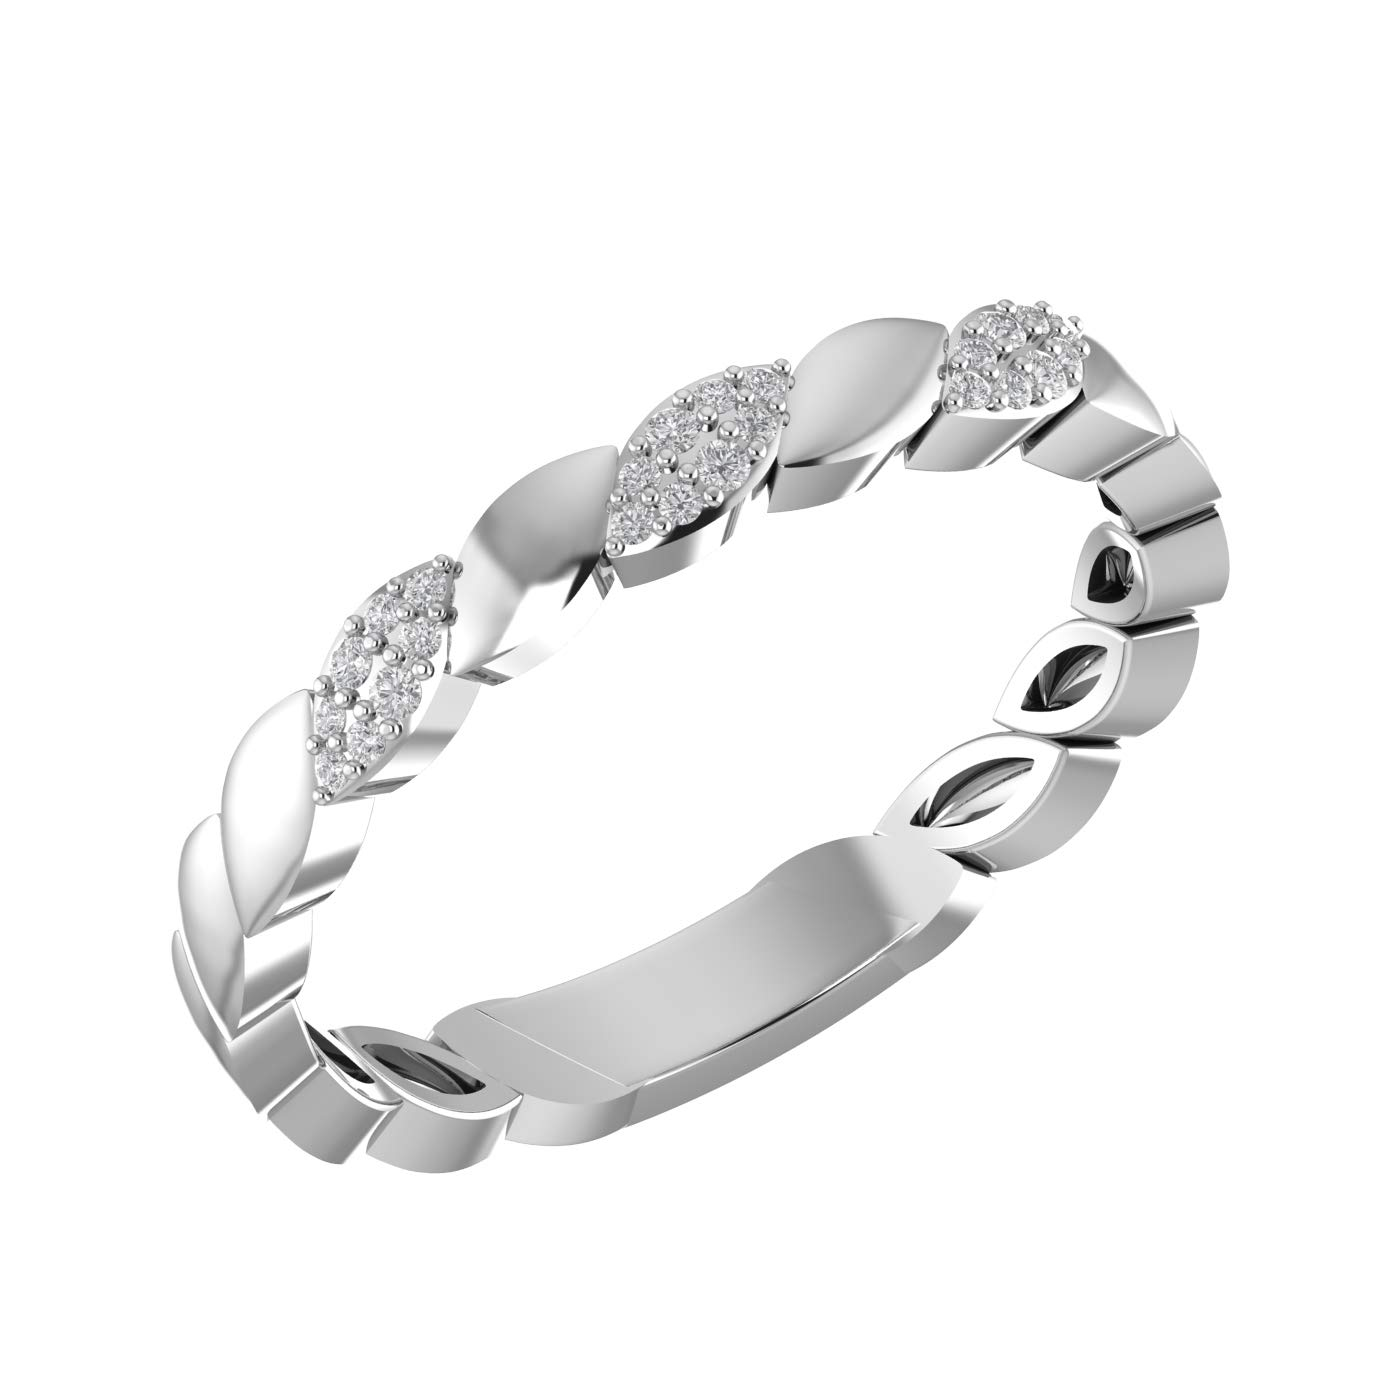 Amayra 0.08 CTW Diamond Ring - 24 Natural Round Stones in 925 Sterling Silver- Brilliant Cut US Size 4 (Color-GH Clarity-VS-SI)-Perfect for Bridal Promise Ring, Wedding Anniversary or Beautiful Gift